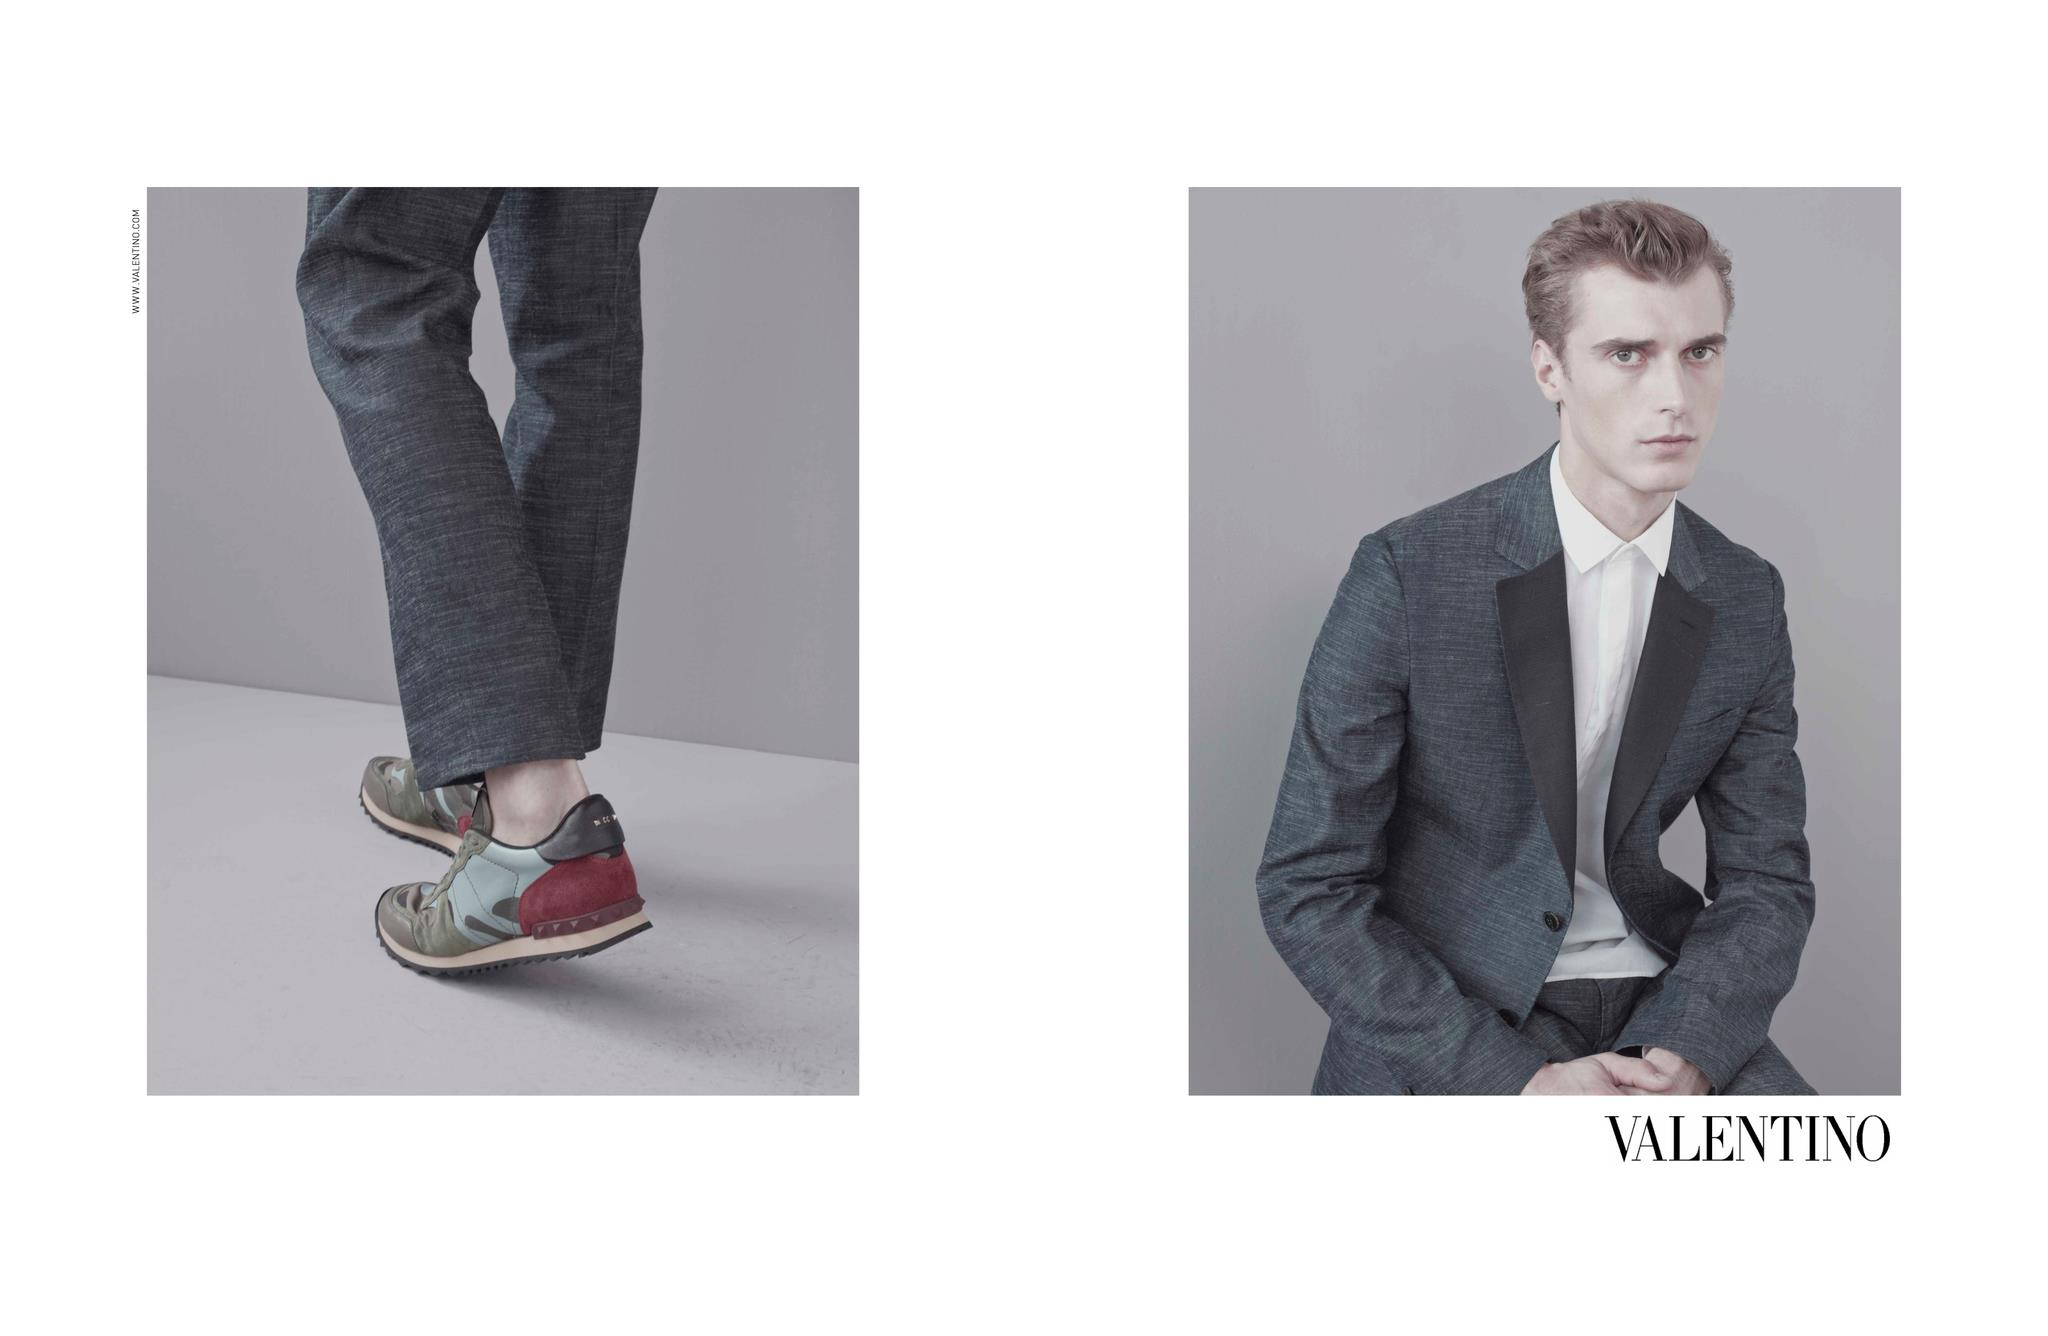 Valentino Taps Clément Chabernaud for its Spring/Summer 2013 Campaign